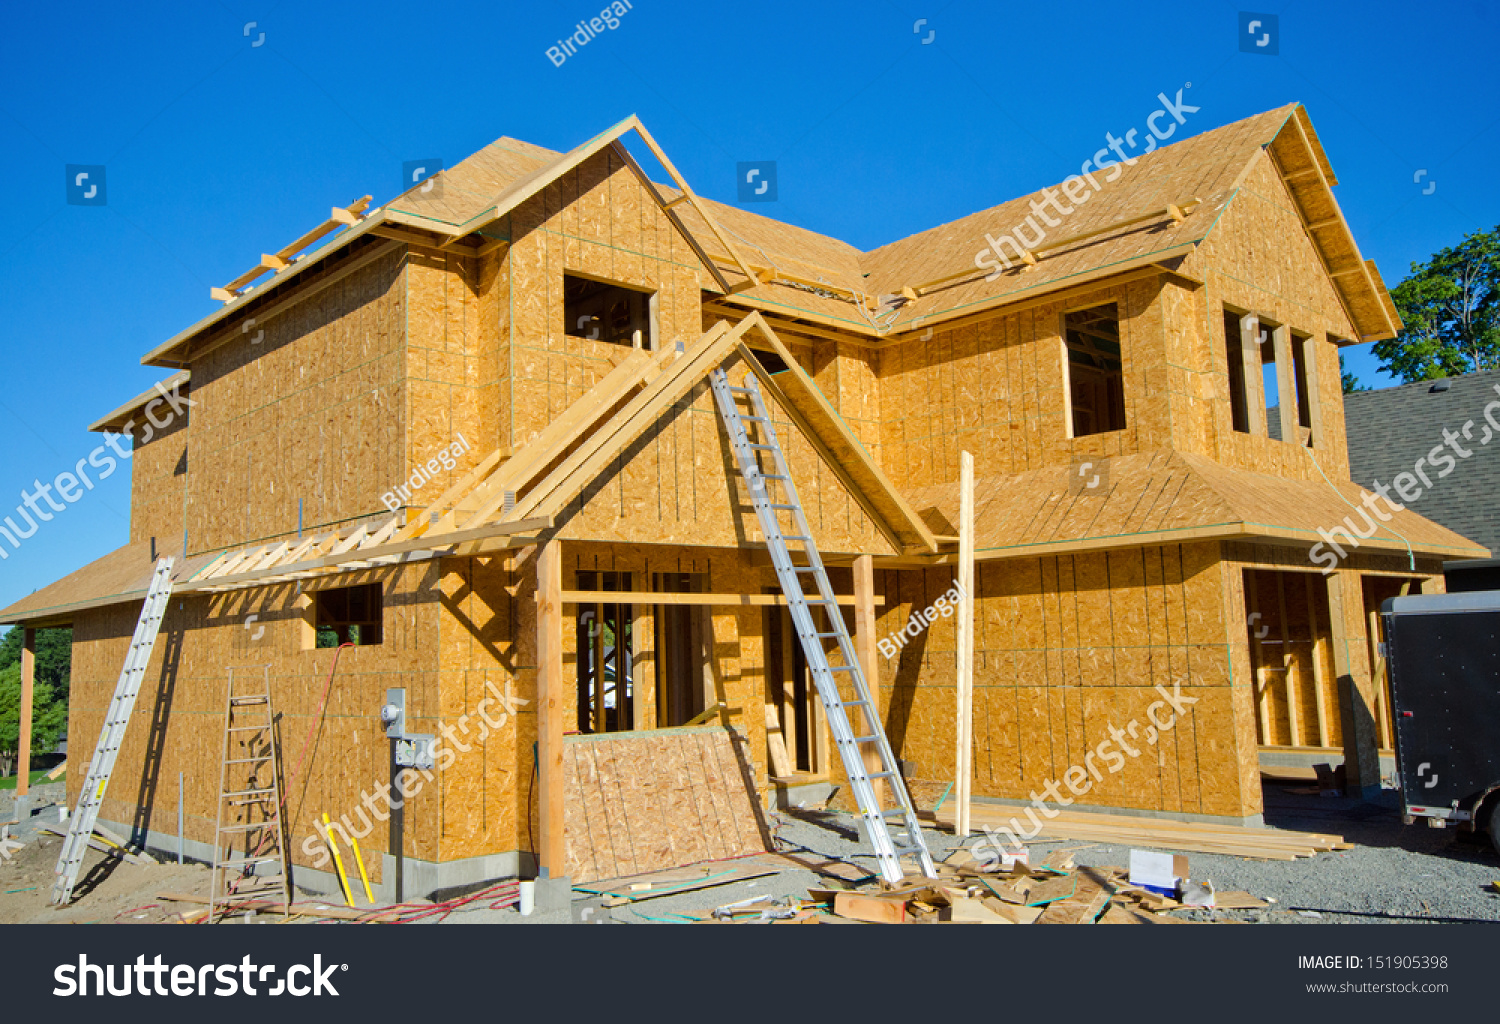 house wood frame construction - Wood Frame Construction